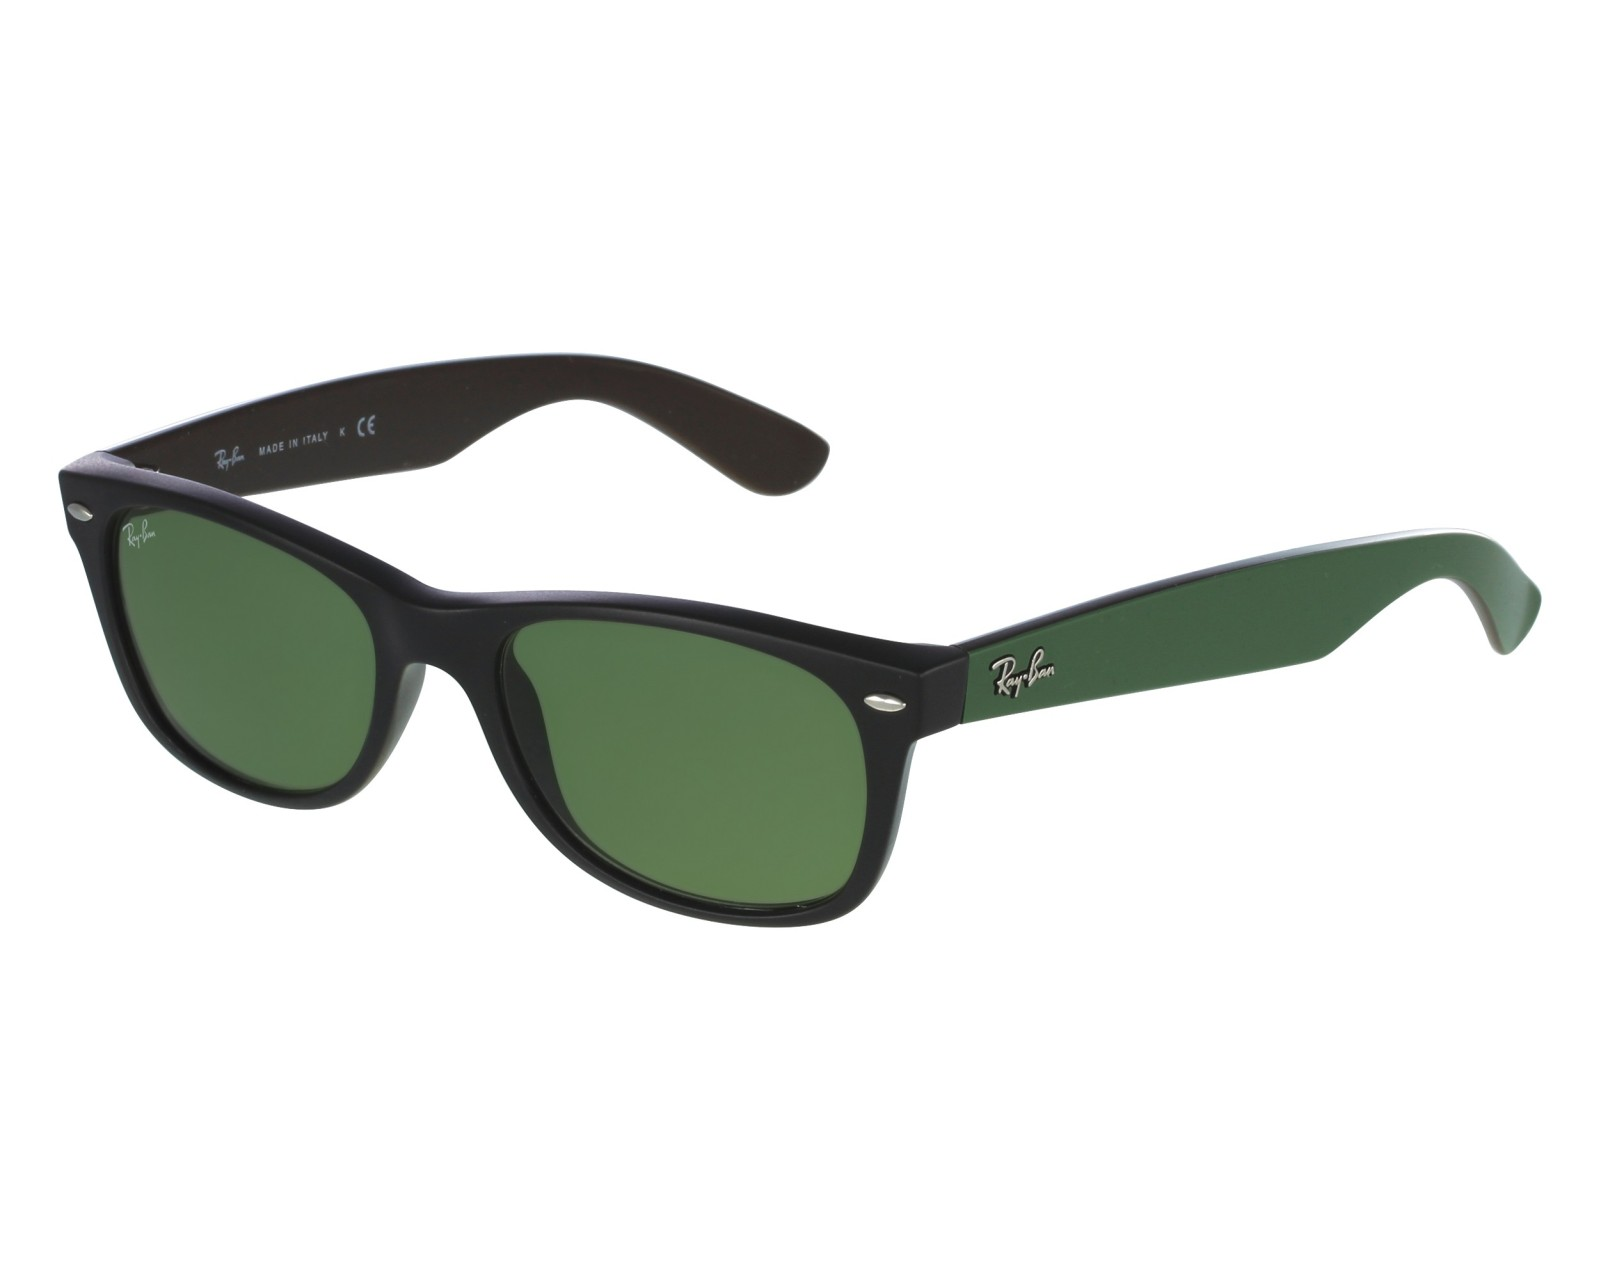 879525e119bc Sunglasses Ray-Ban RB-2132 6184 4E 52-18 Black Green front